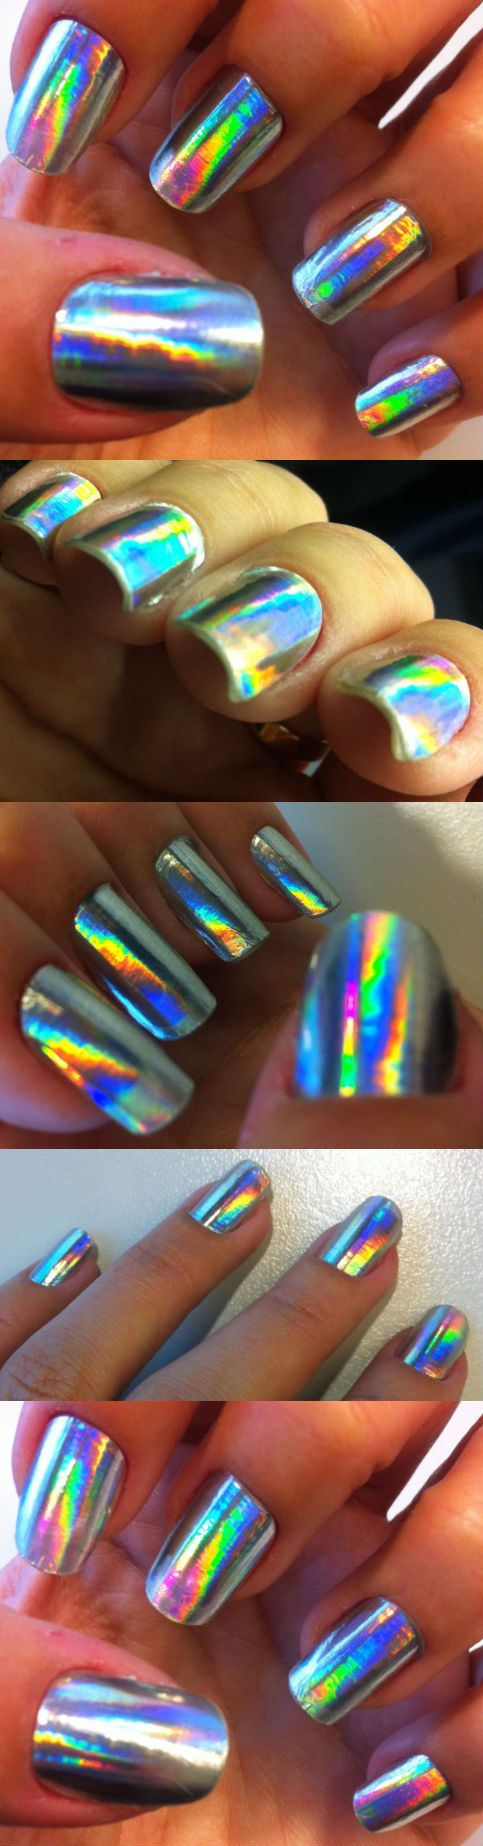 multi-colored effect metallic nail polish designs